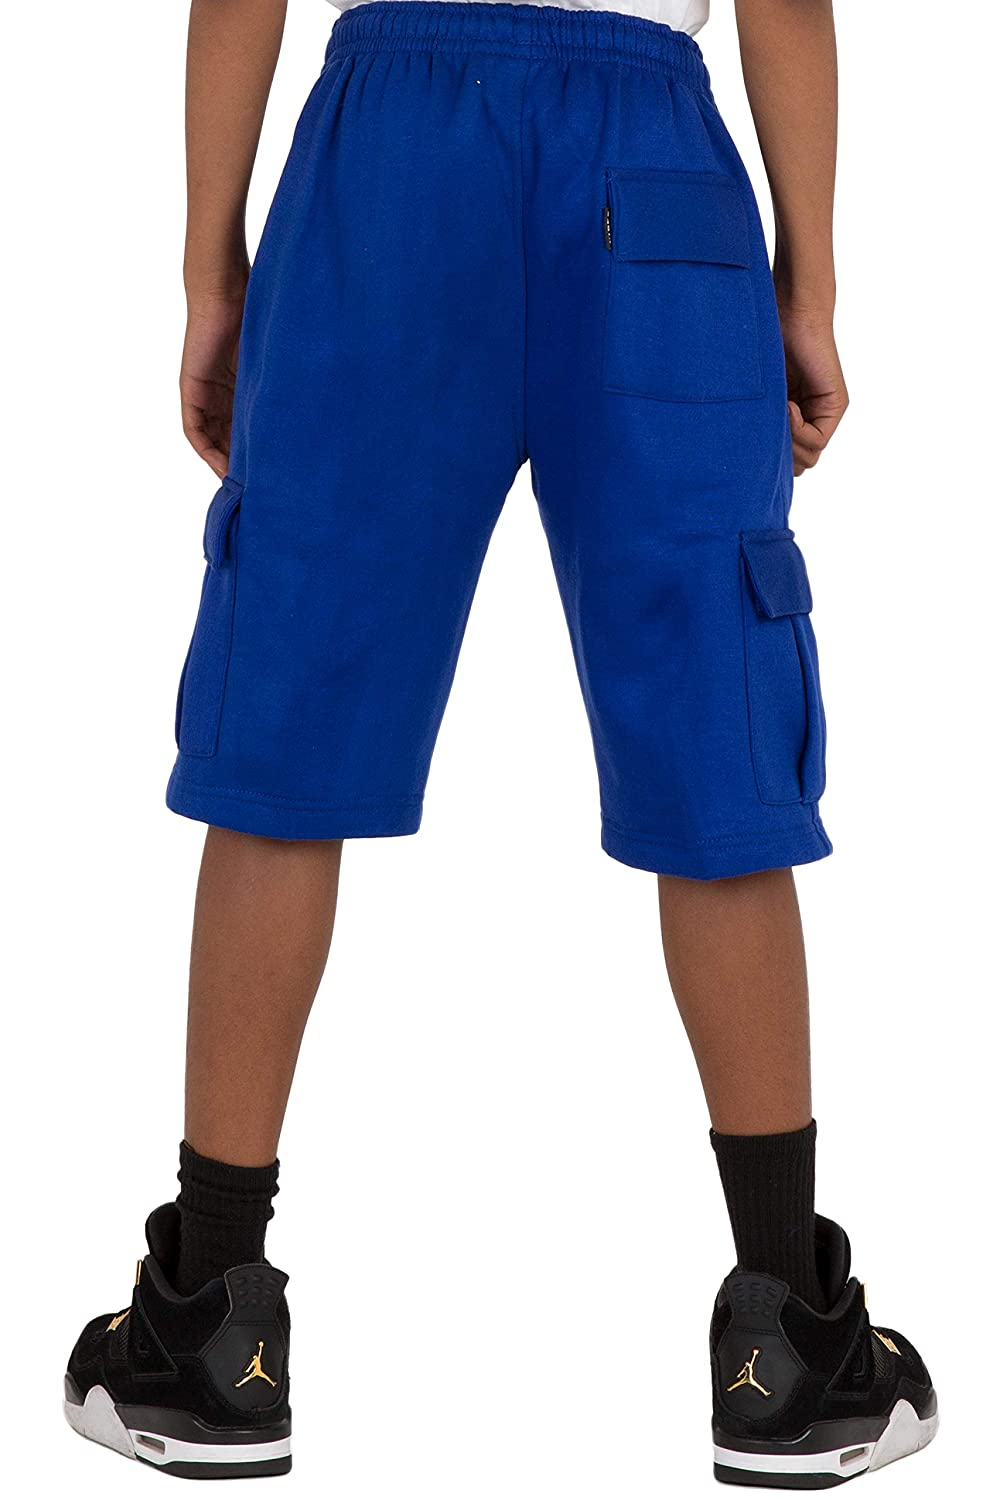 Vibes Boys CVC Fleece Cargo Pull On Shorts Royal Blue Color Relax Fit